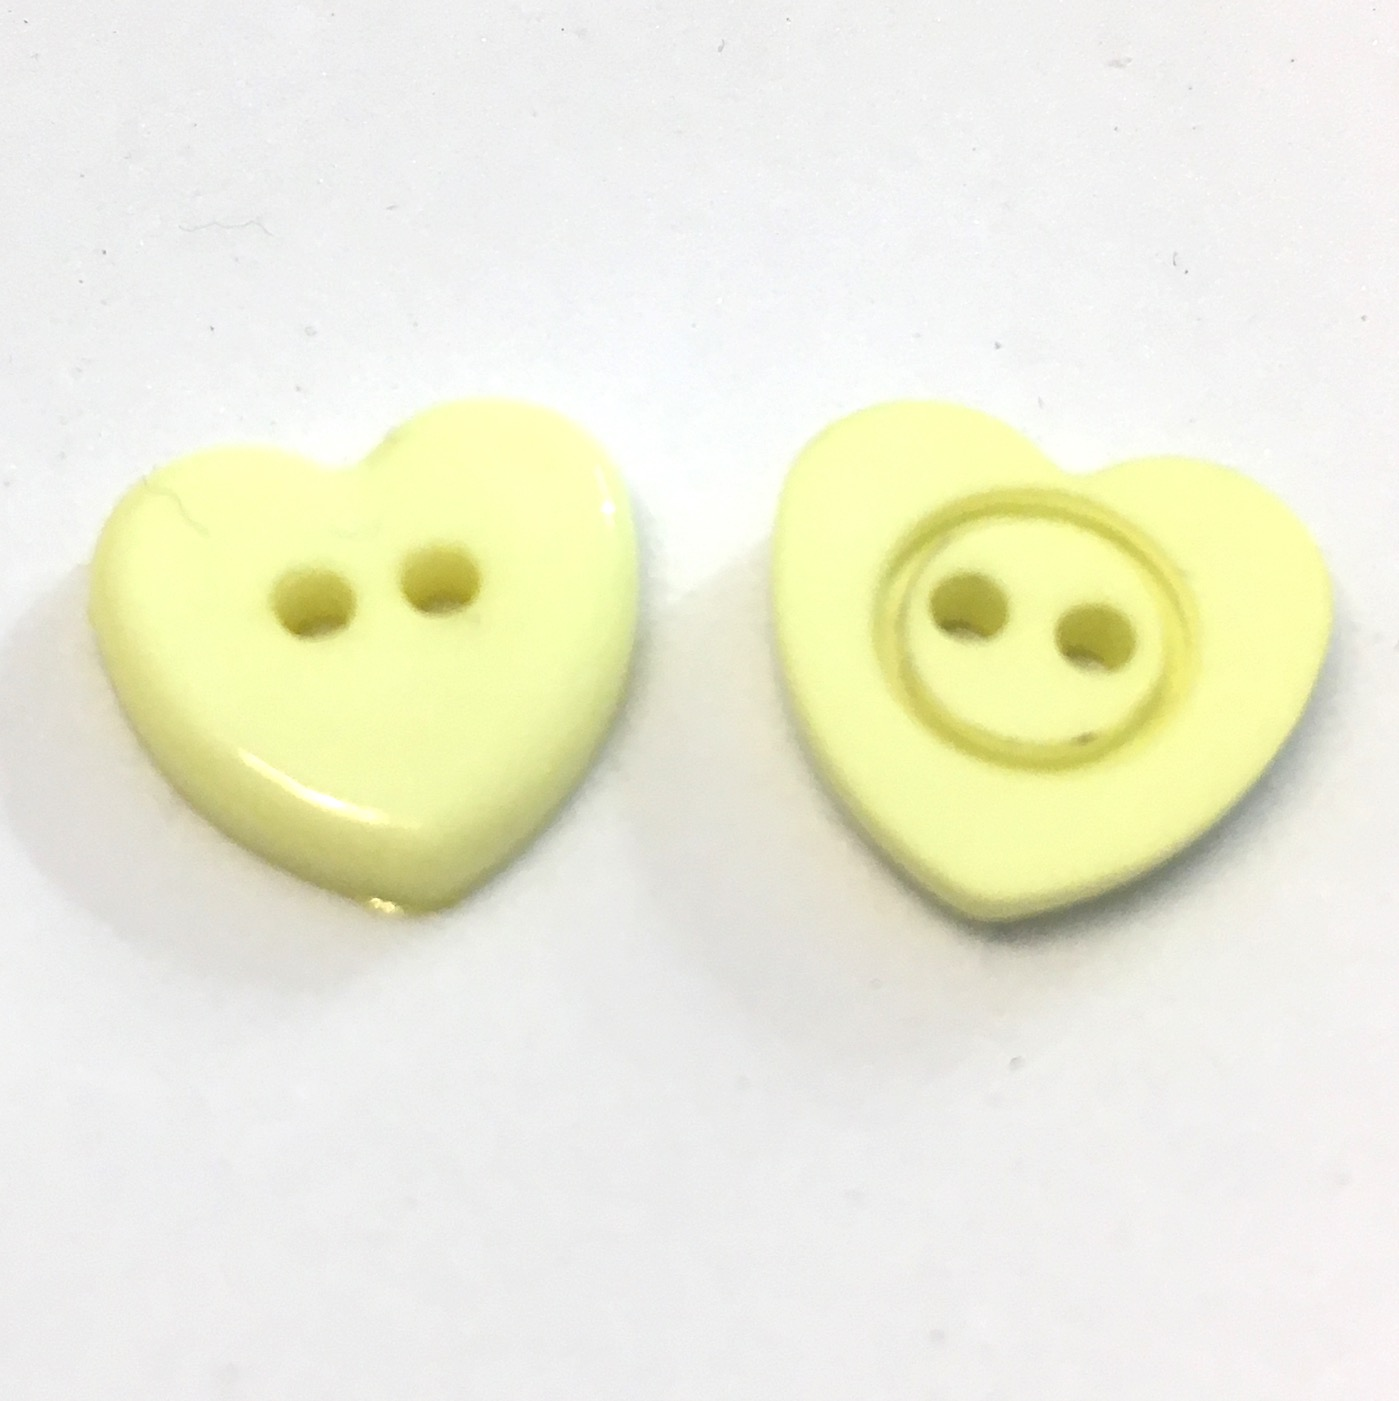 10 x 14mm yellow heart shaped buttons